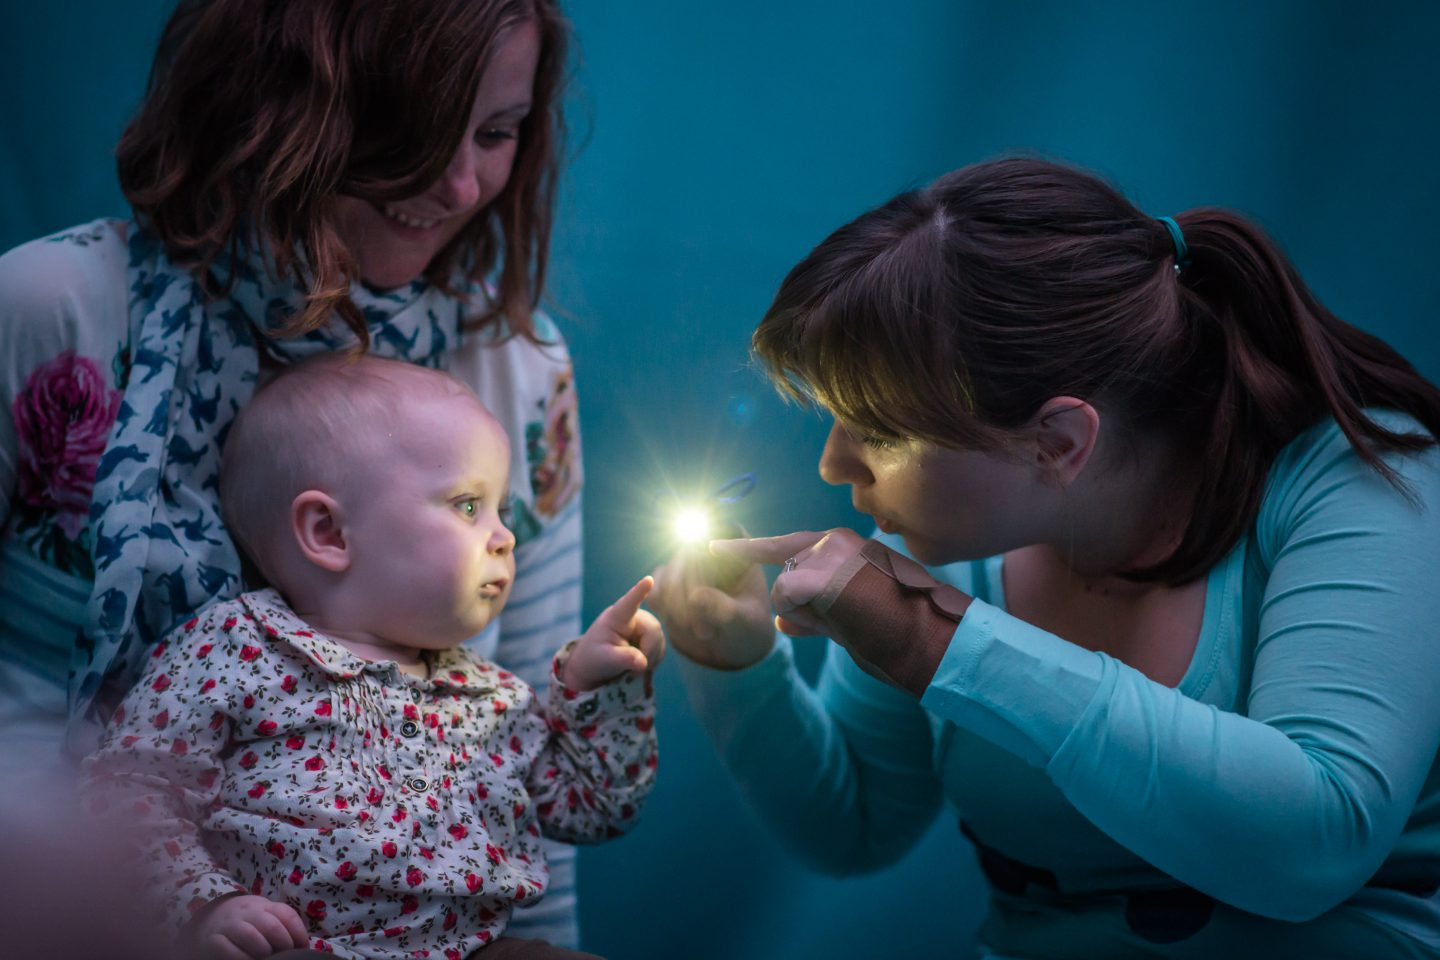 TiNY - a performer in blue holds out a tiny light that a baby reaches to touch. the mother smiles in the background